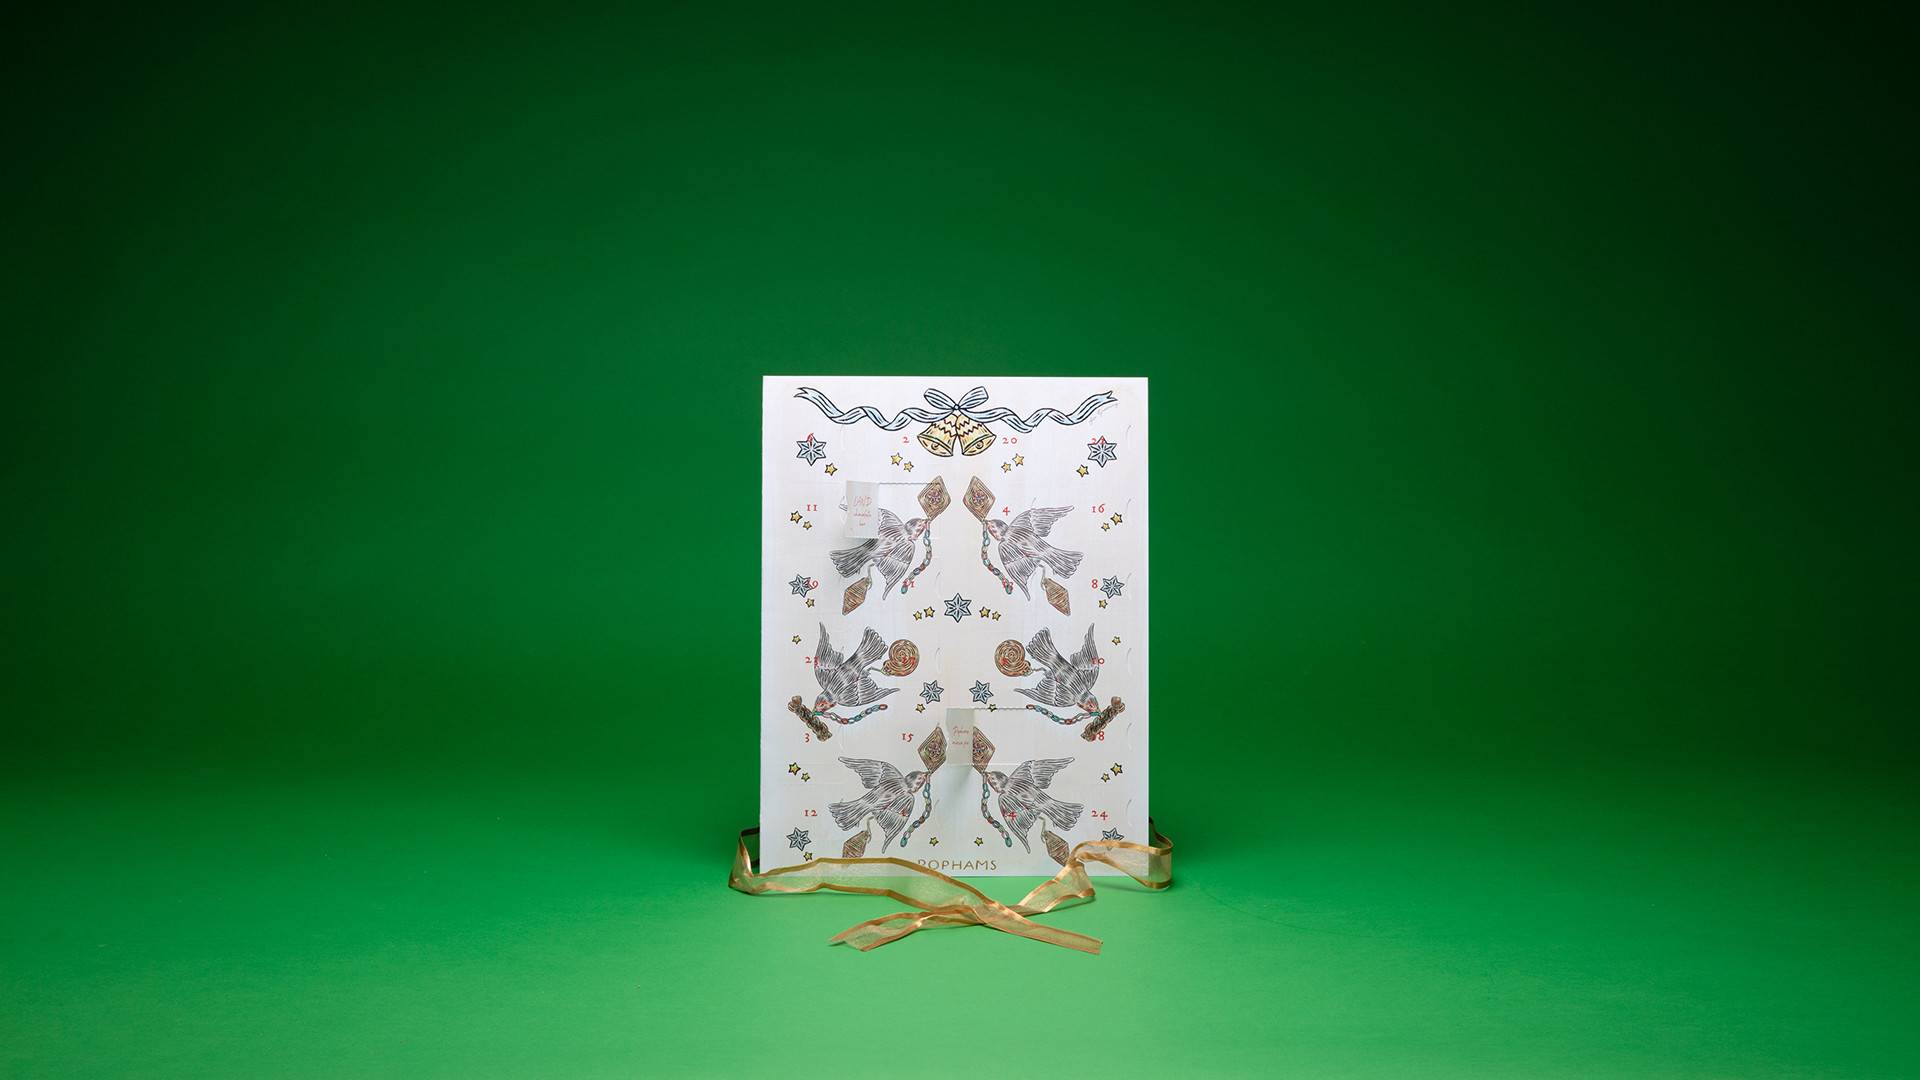 Pophams advent calendar, £30